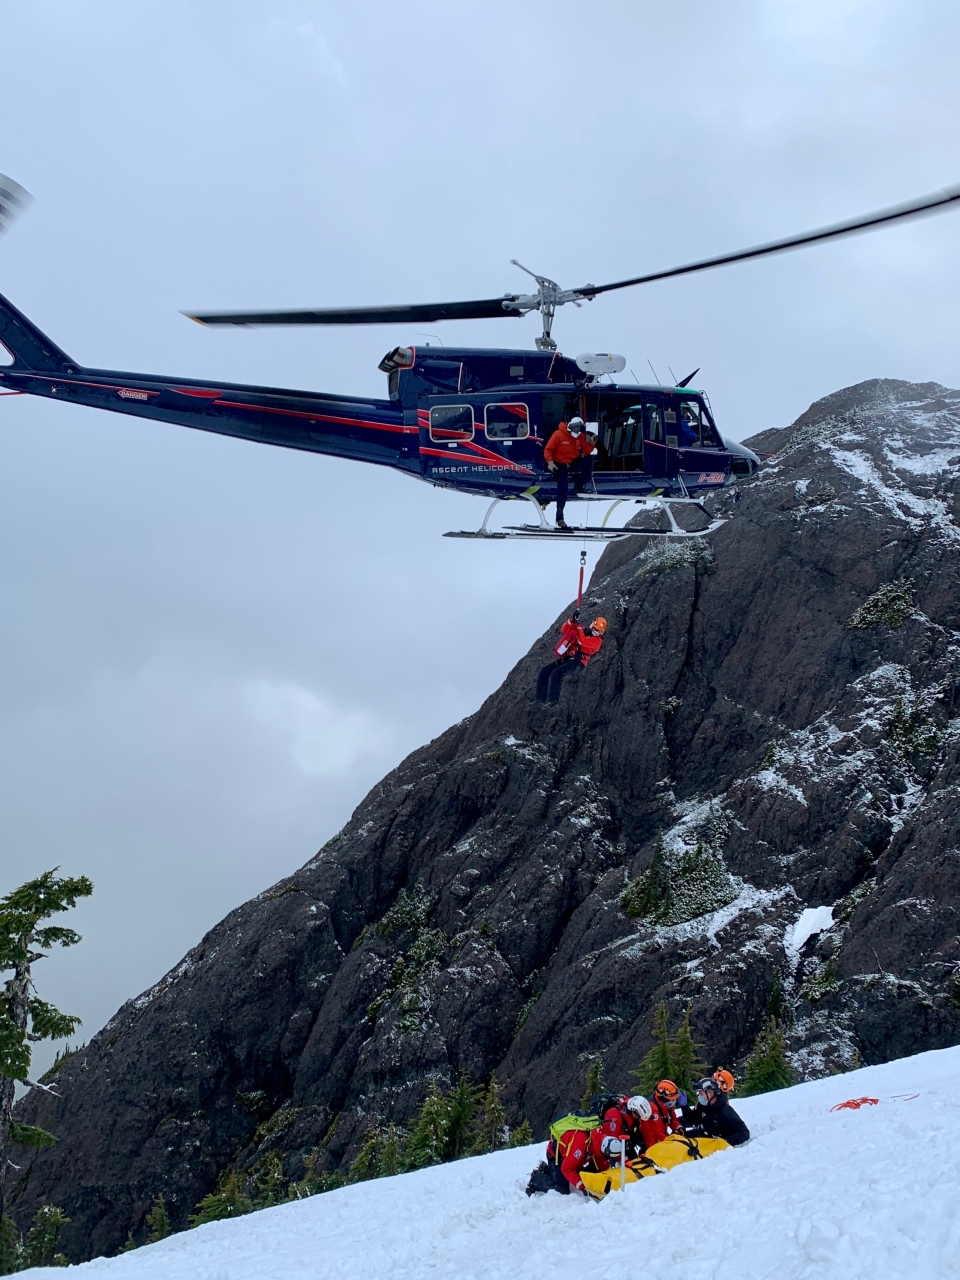 Volunteers from Alberni Valley Search and Rescue were the first to reach the injured man, but it was the hoist team - made up of searchers from Campbell River and Comox Valley teams - that performed the extraction. (Photo: Alberni Valley Rescue Squad)